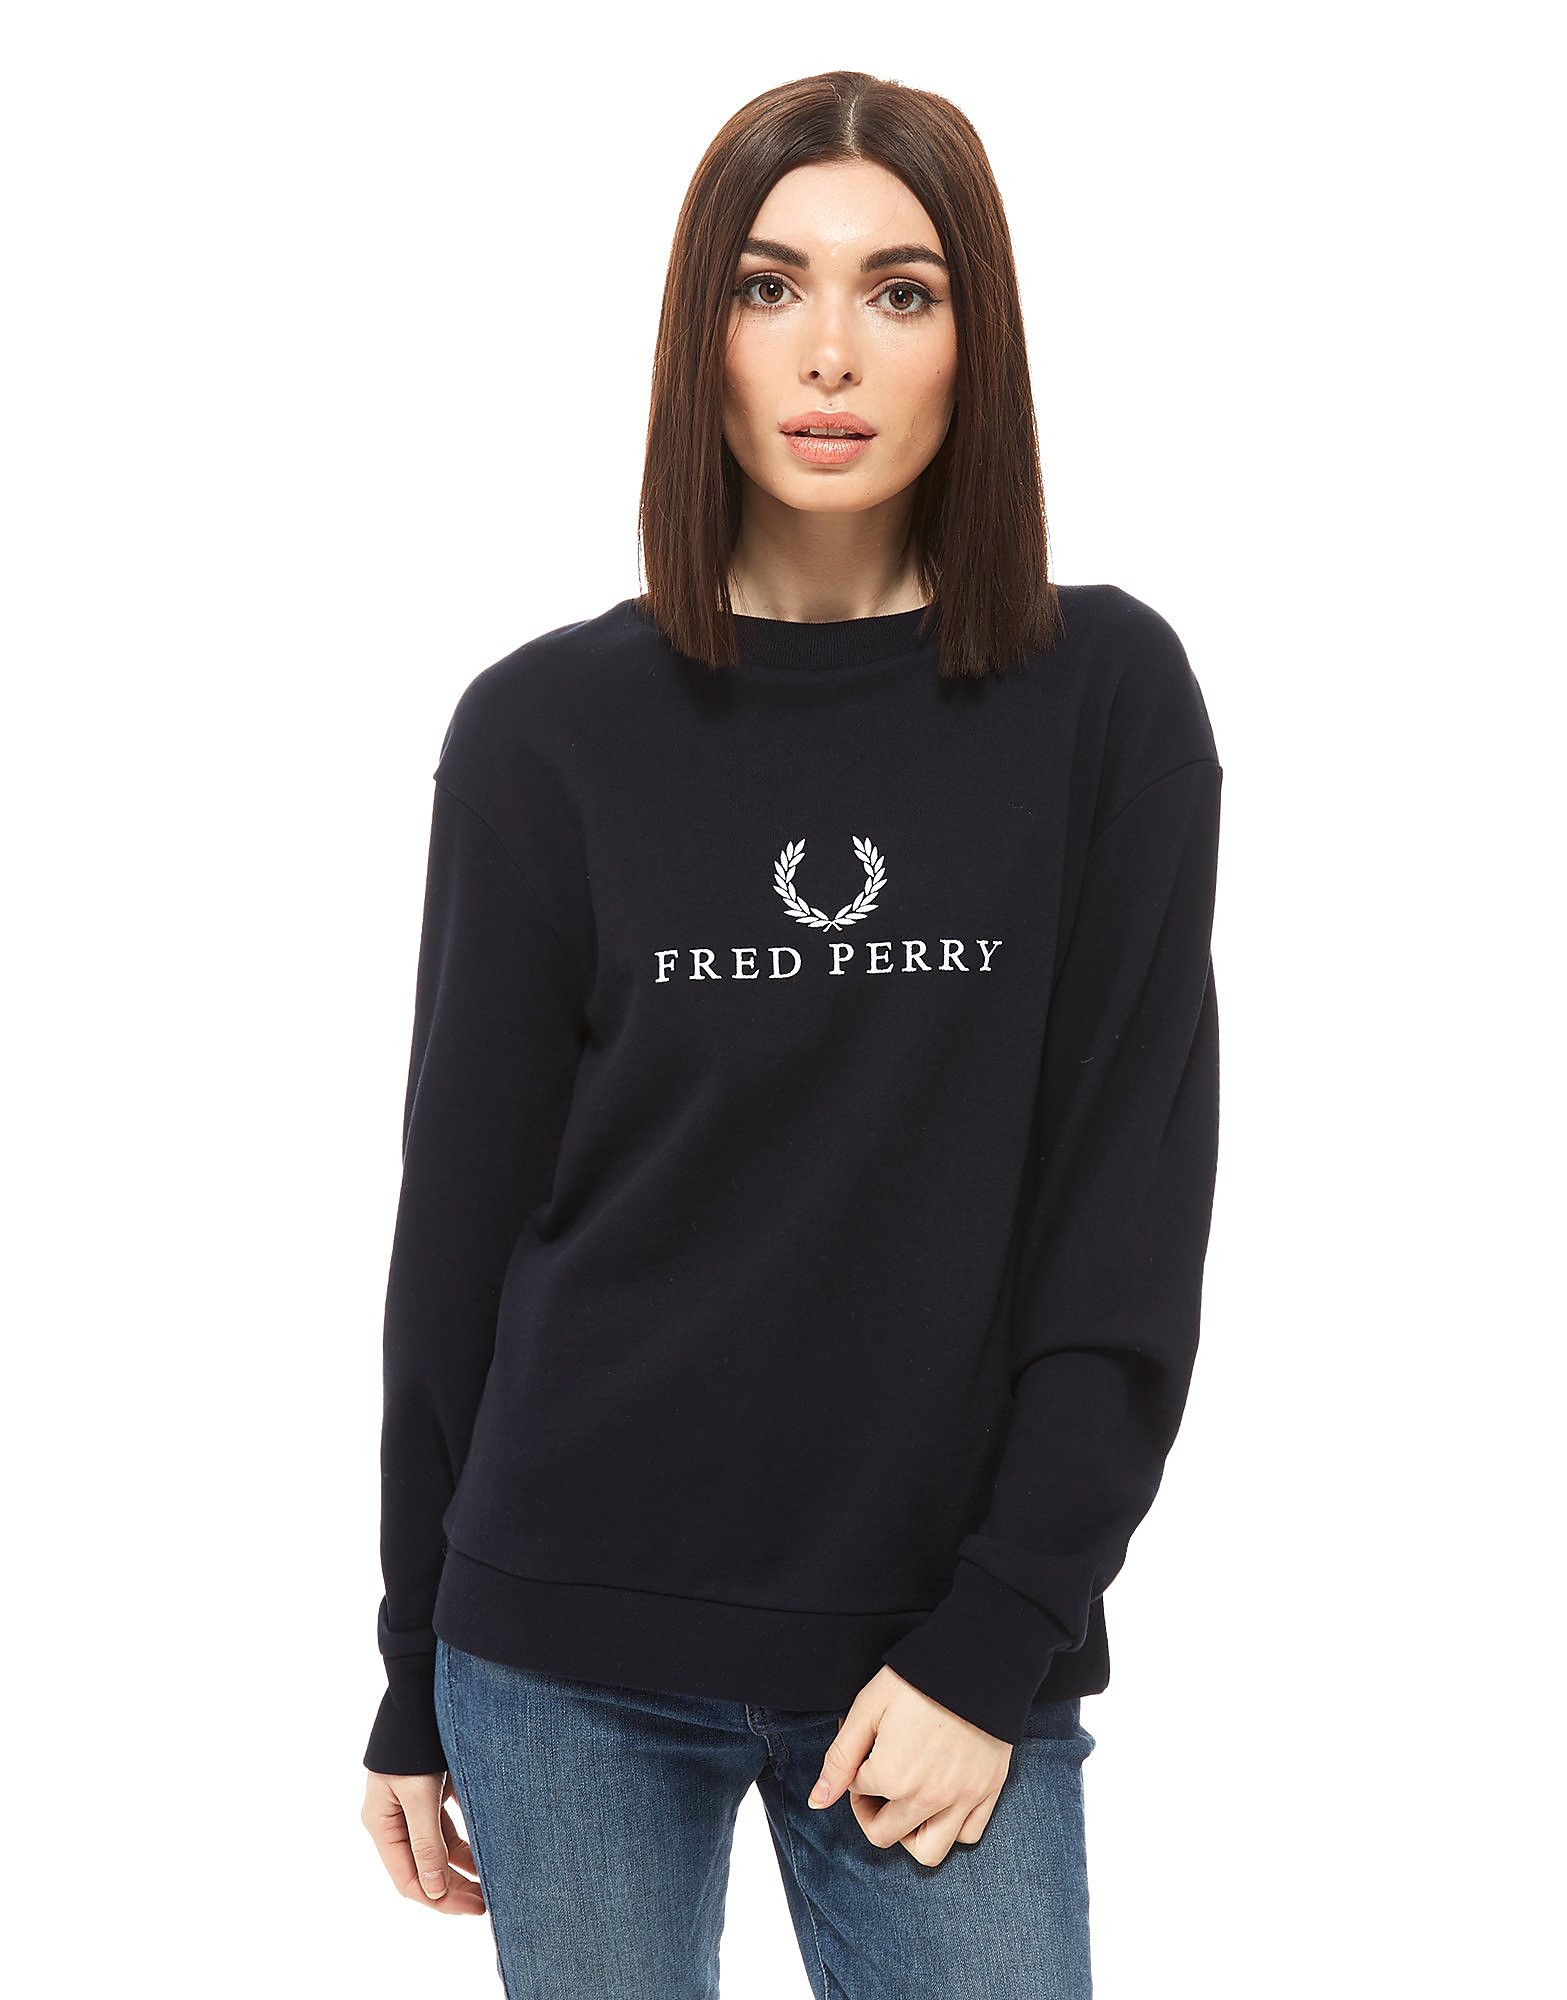 Fred Perry Sports Authentic Embroidered Crew Sweatshirt